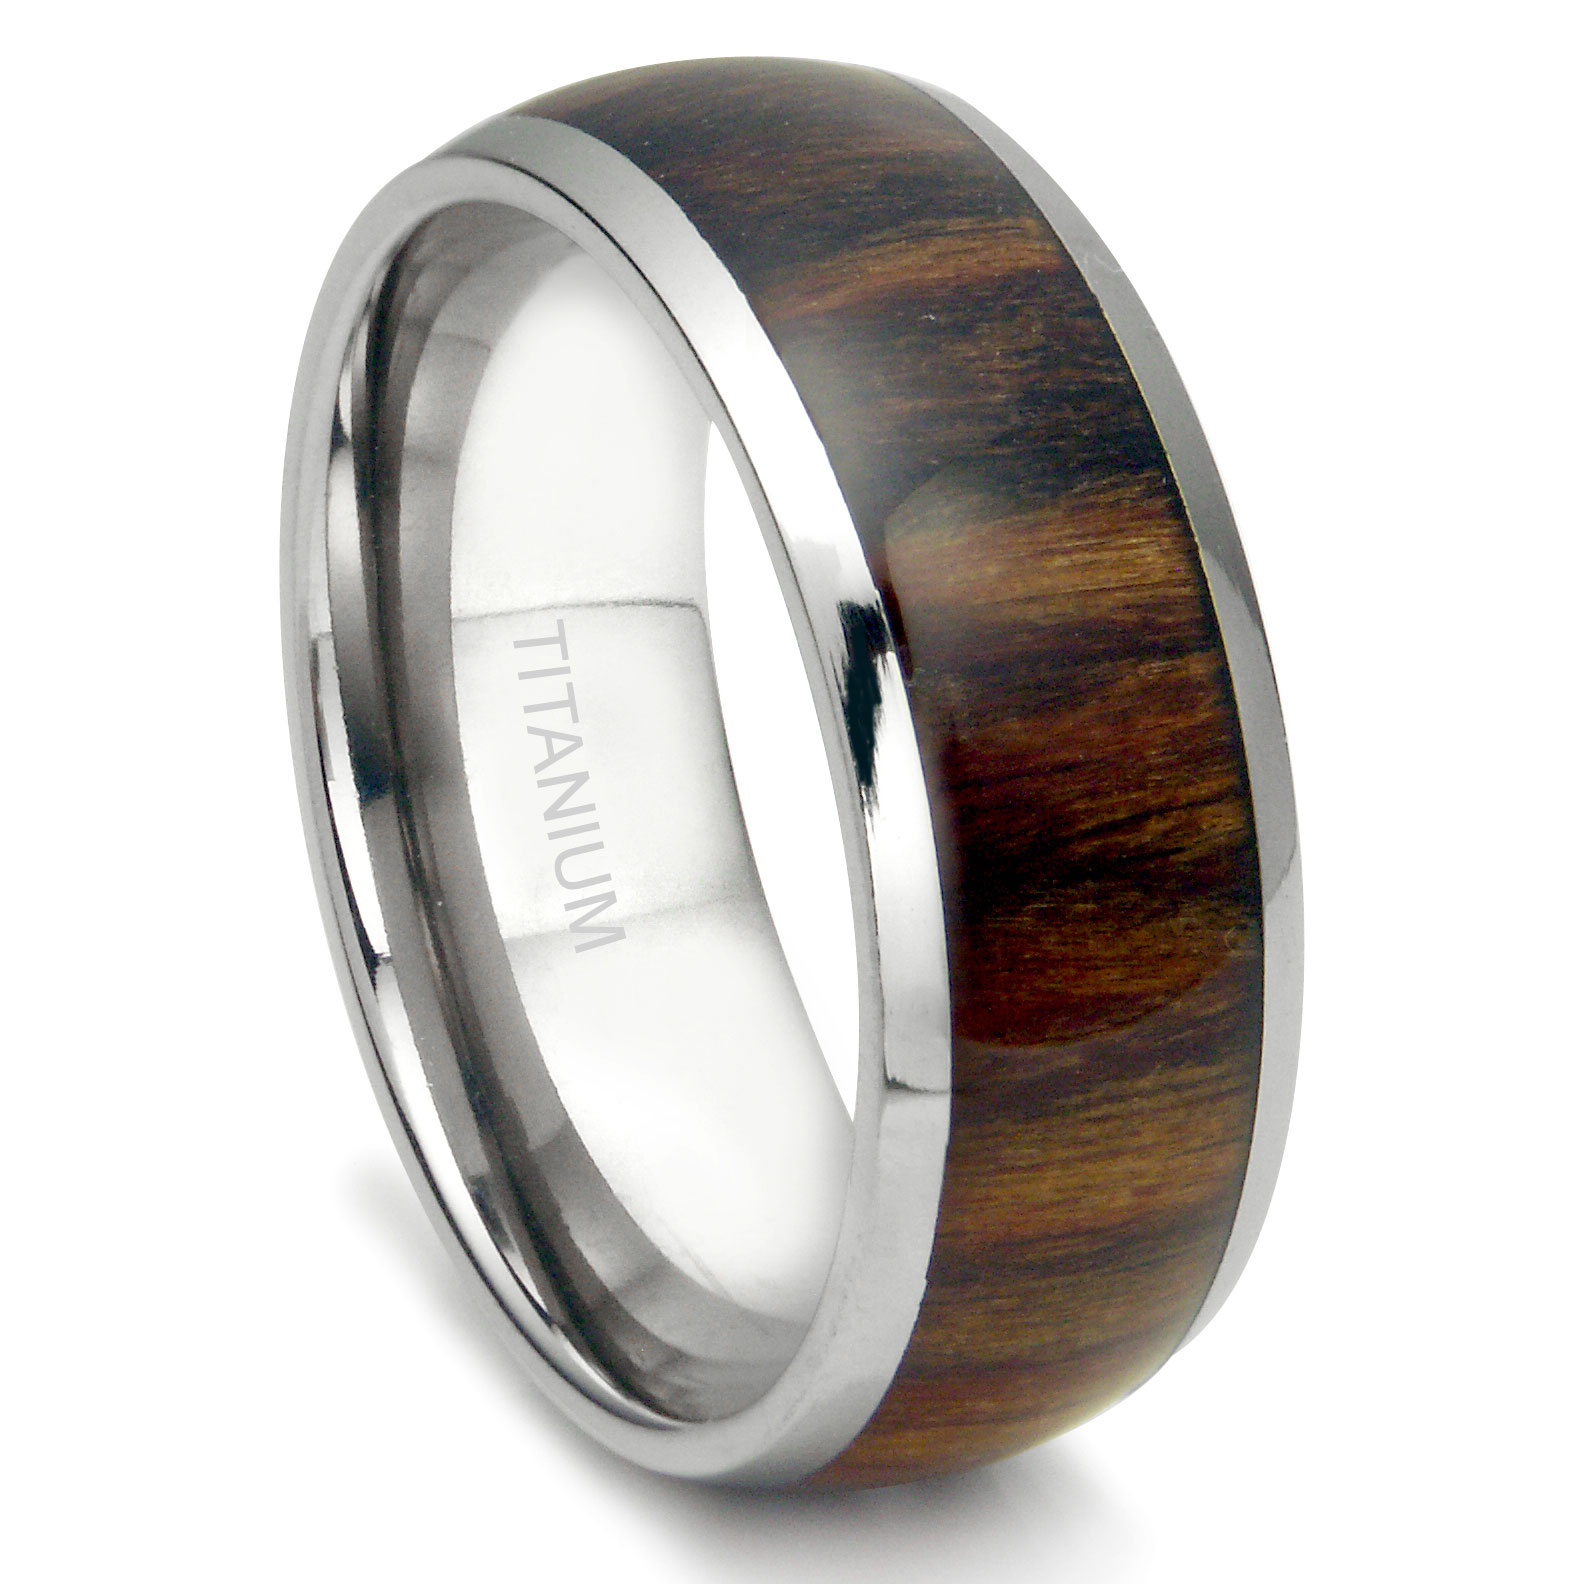 Titanium 8MM Domed Santos Rosewood Inlay Wedding Band Ring P mens titanium wedding bands Home Men s Titanium Wedding Rings Loading zoom